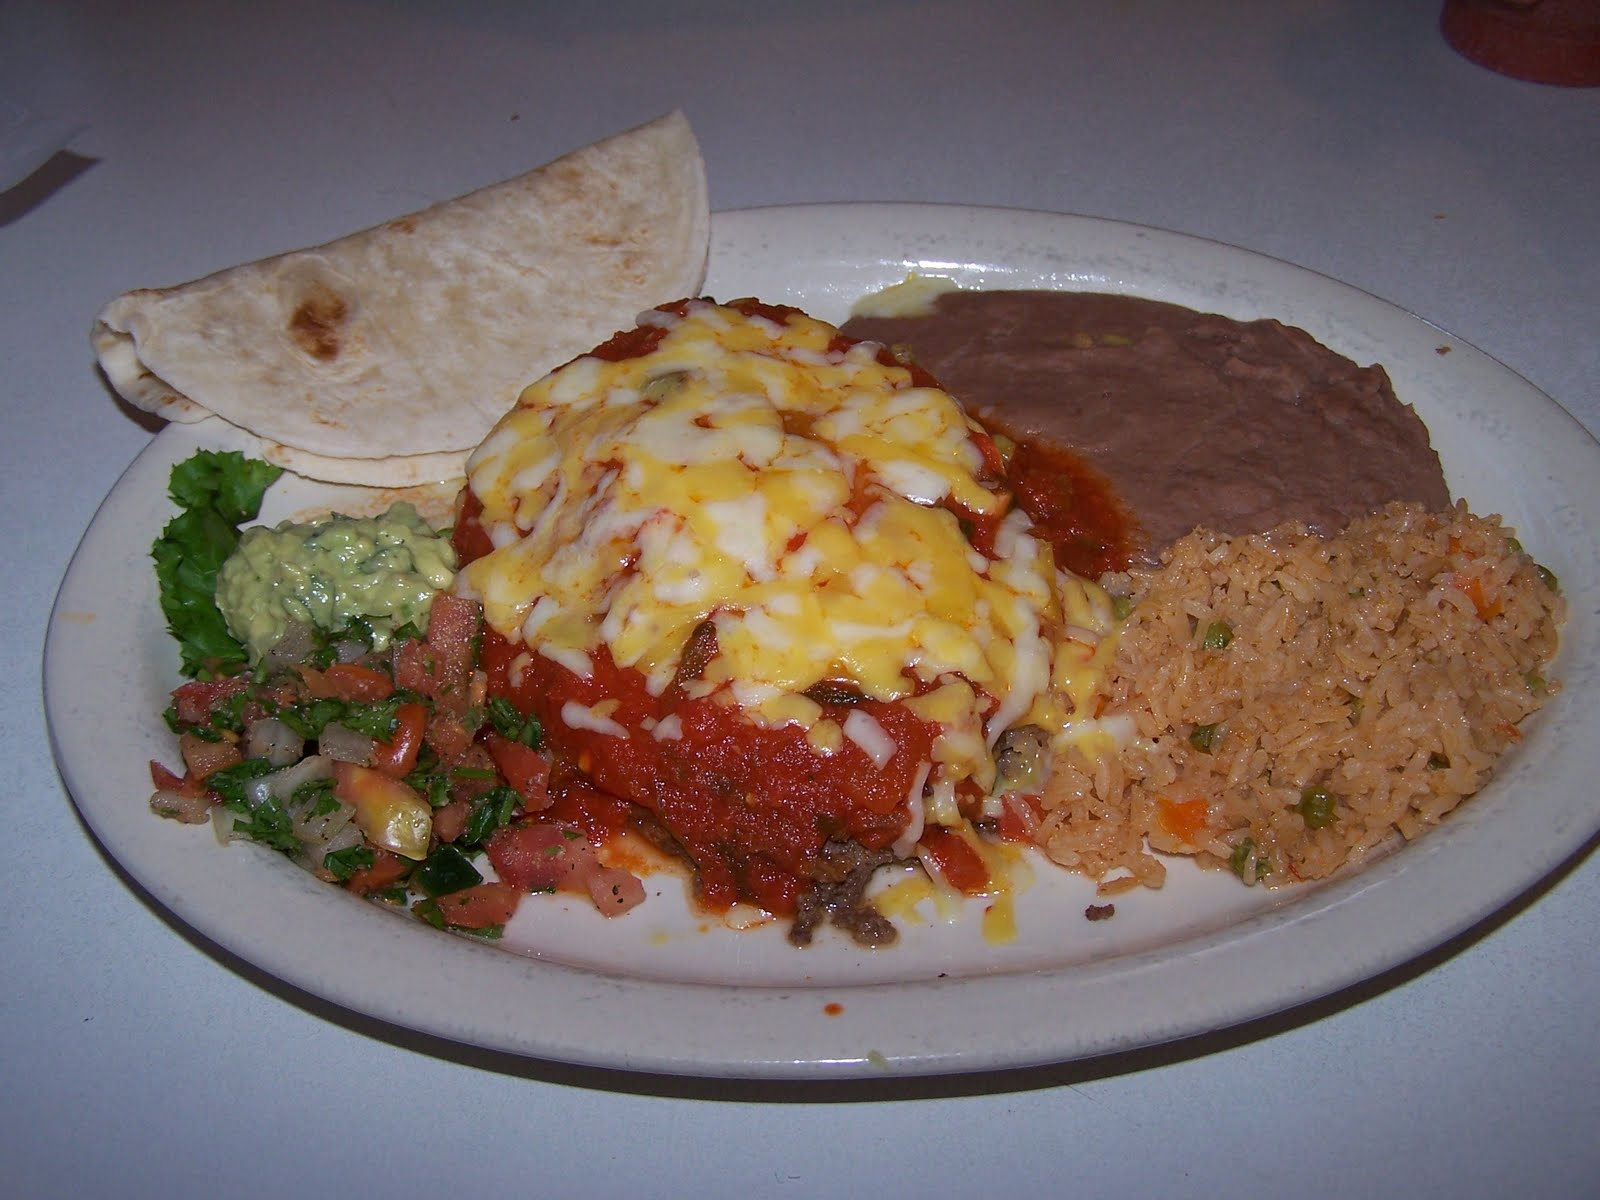 About Life In The Texas Hill Country: With Respect To Mexican Food, I'm Fickle